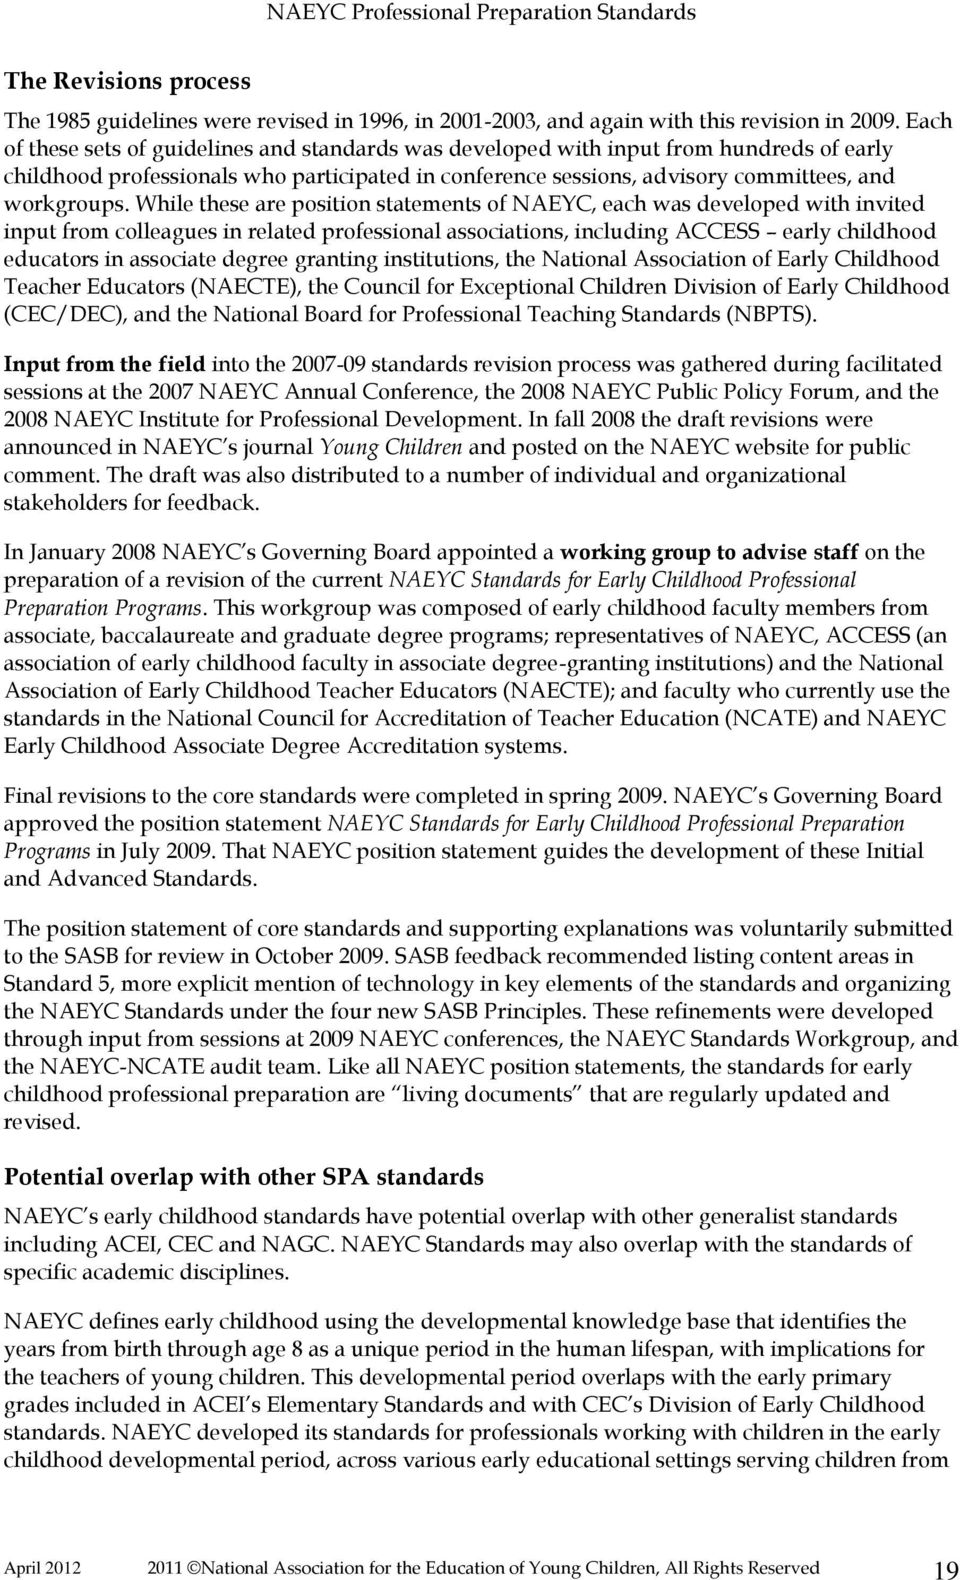 While these are position statements of NAEYC, each was developed with invited input from colleagues in related professional associations, including ACCESS early childhood educators in associate